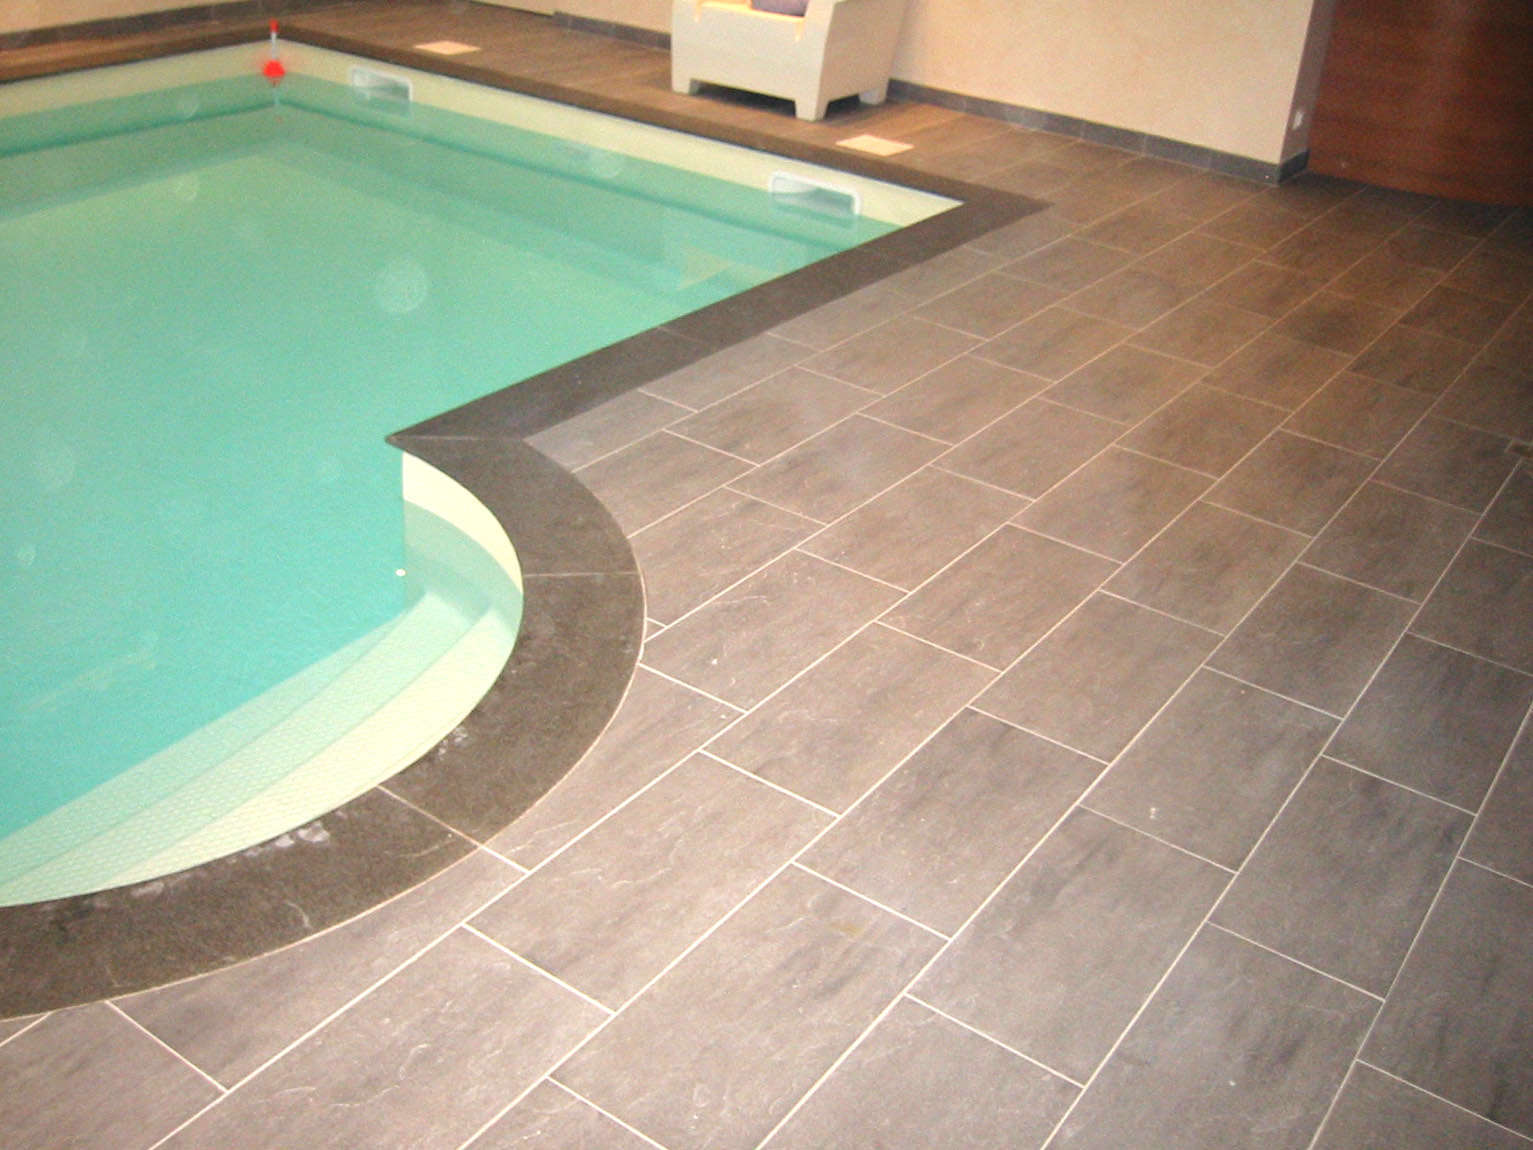 Colle carrelage piscine carrelage petit opus travertin for Colle carreaux piscine